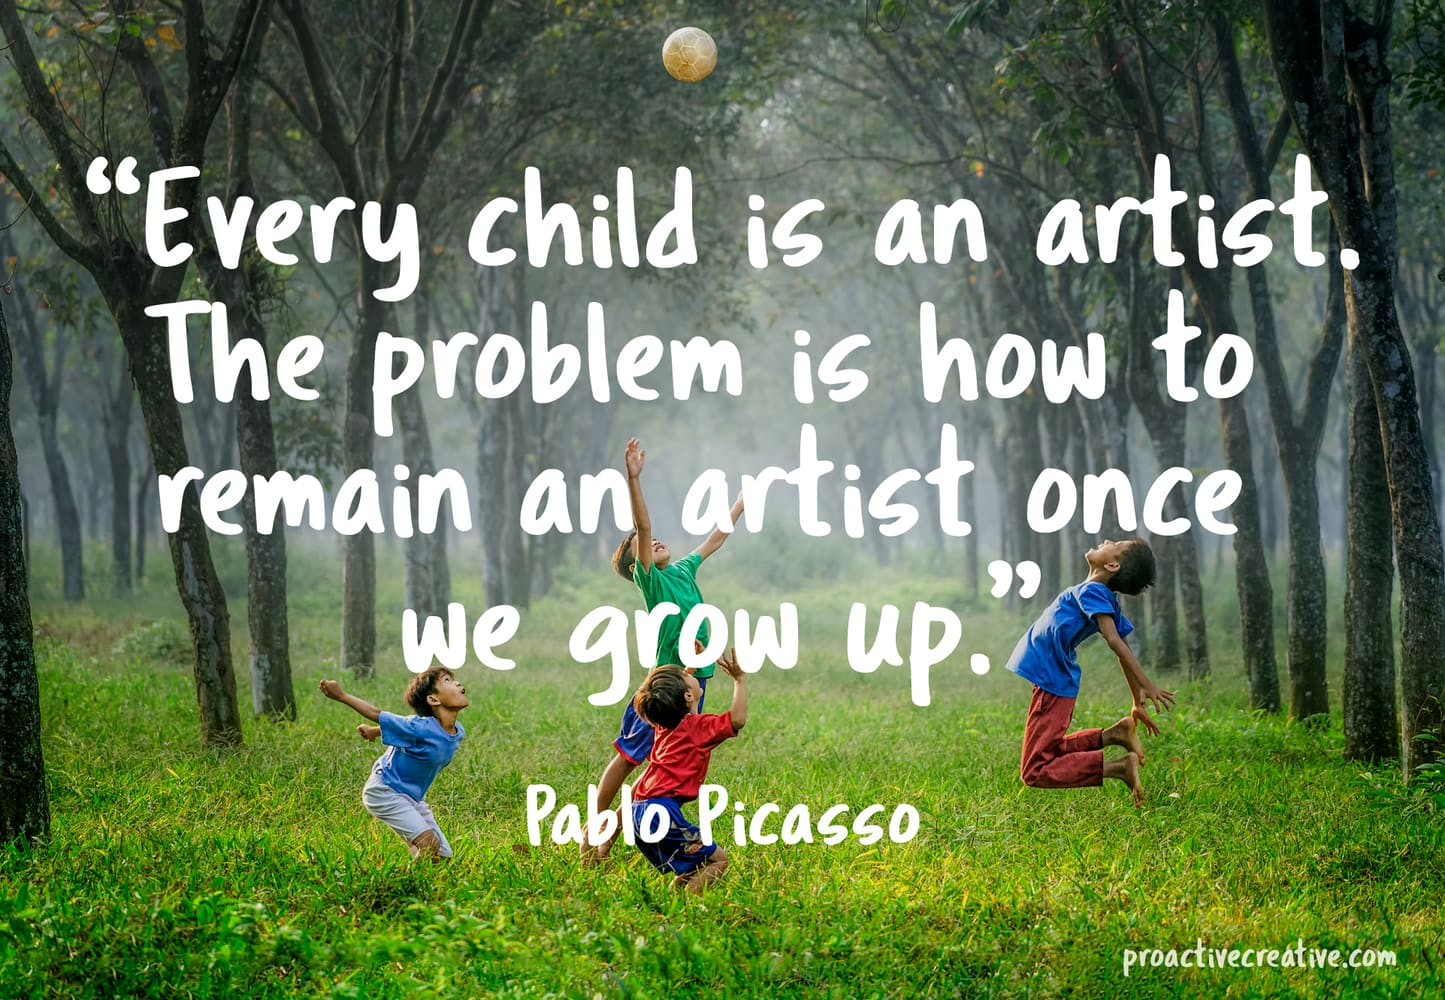 Art quotes - Pablo Picasso